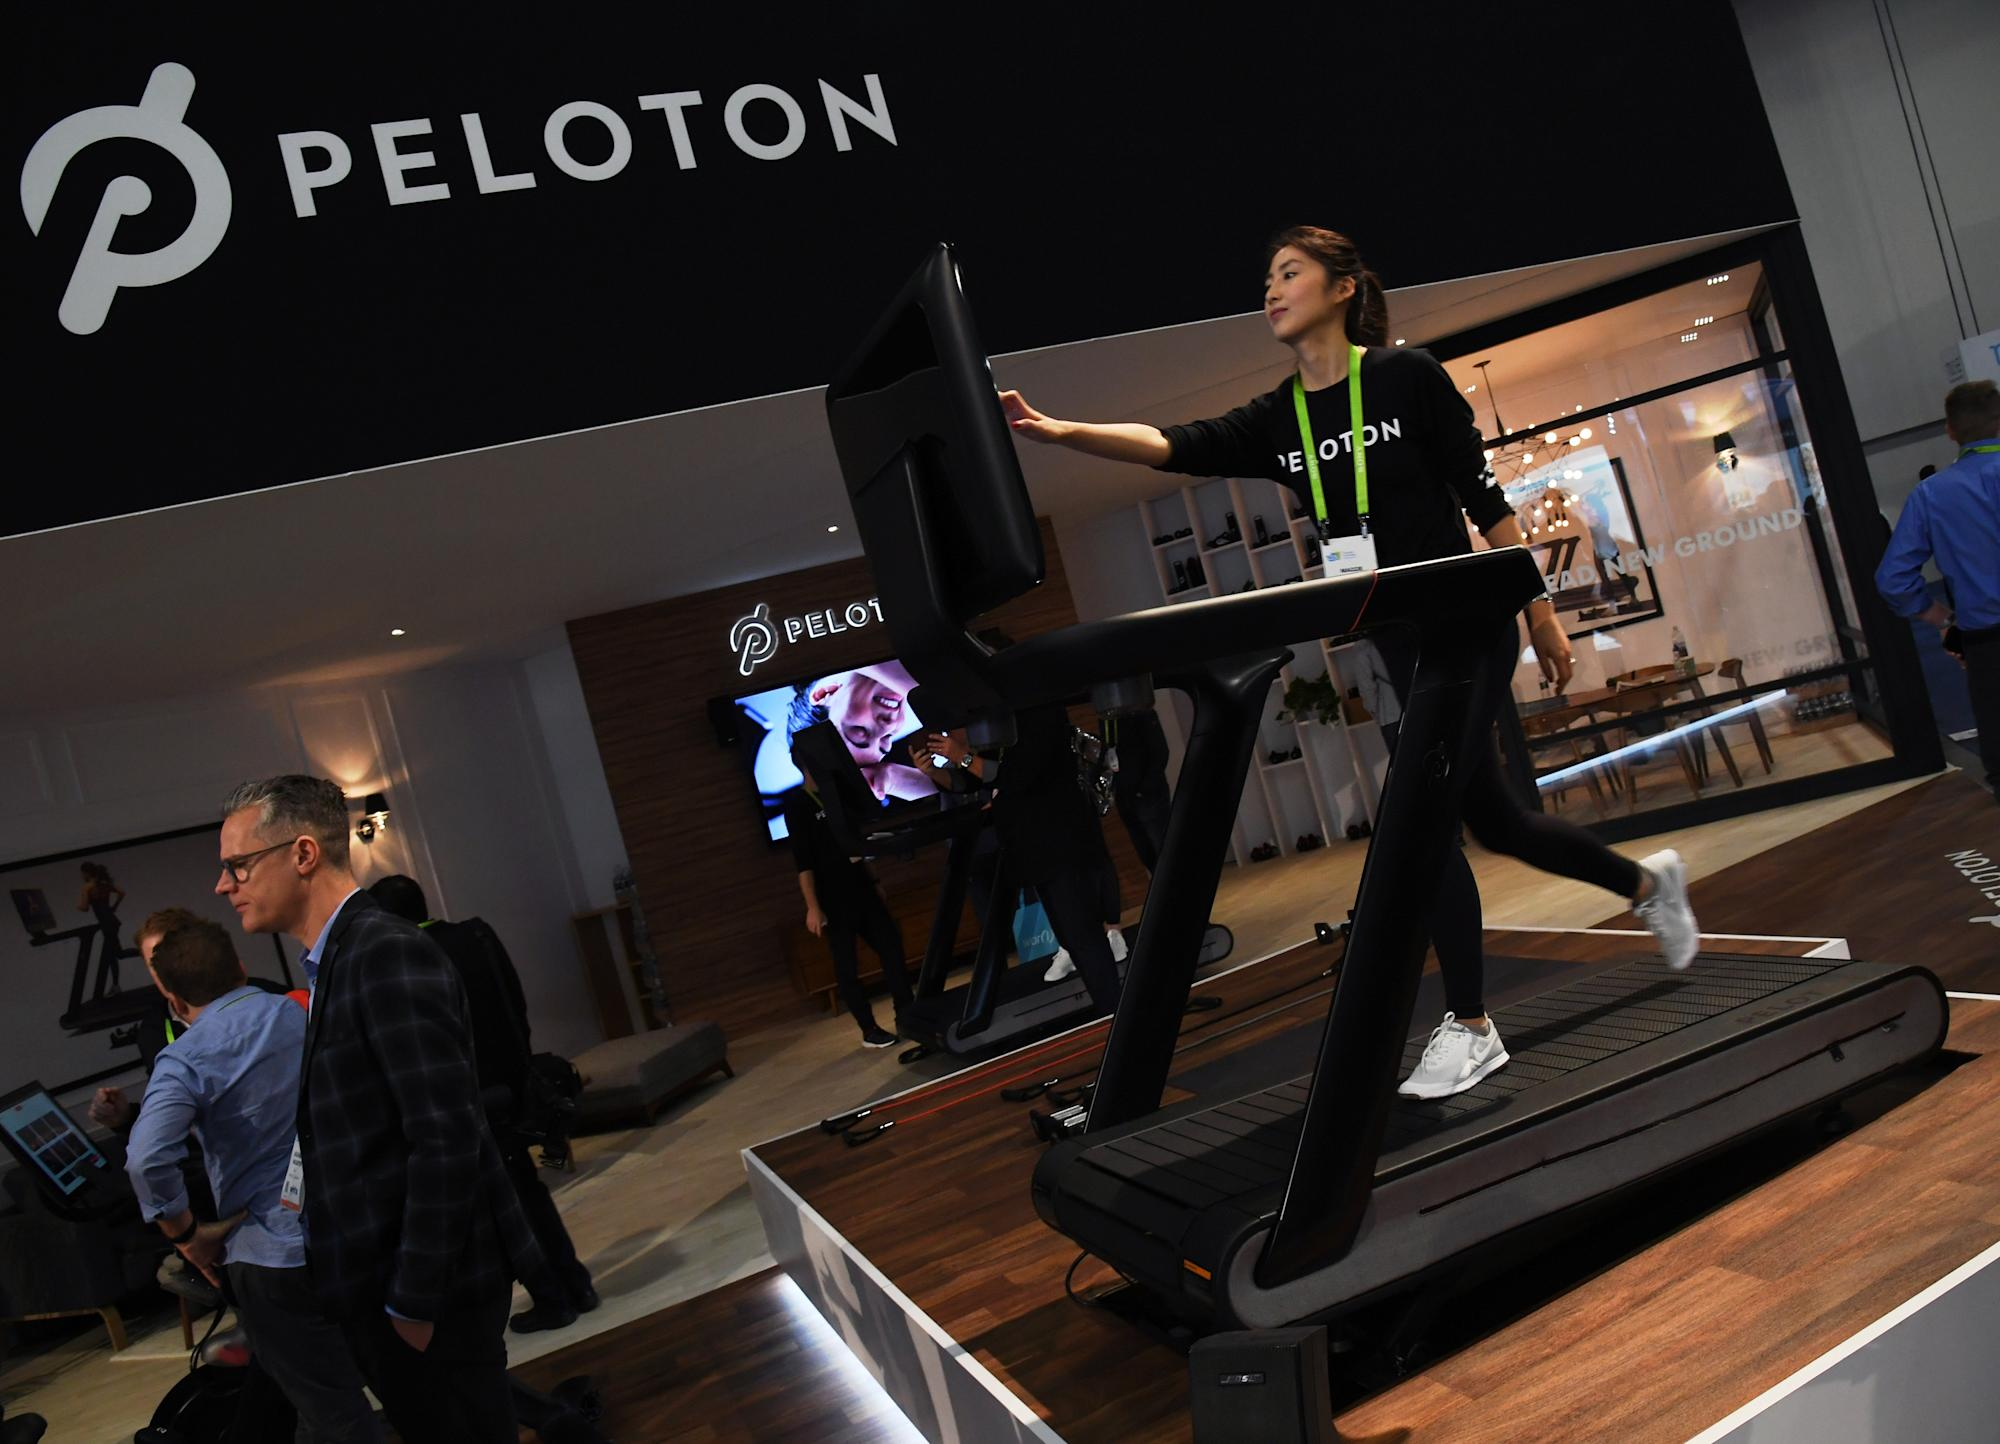 Peloton treadmill recall causes Bank of America to slash rating on the stock – Yahoo Finance